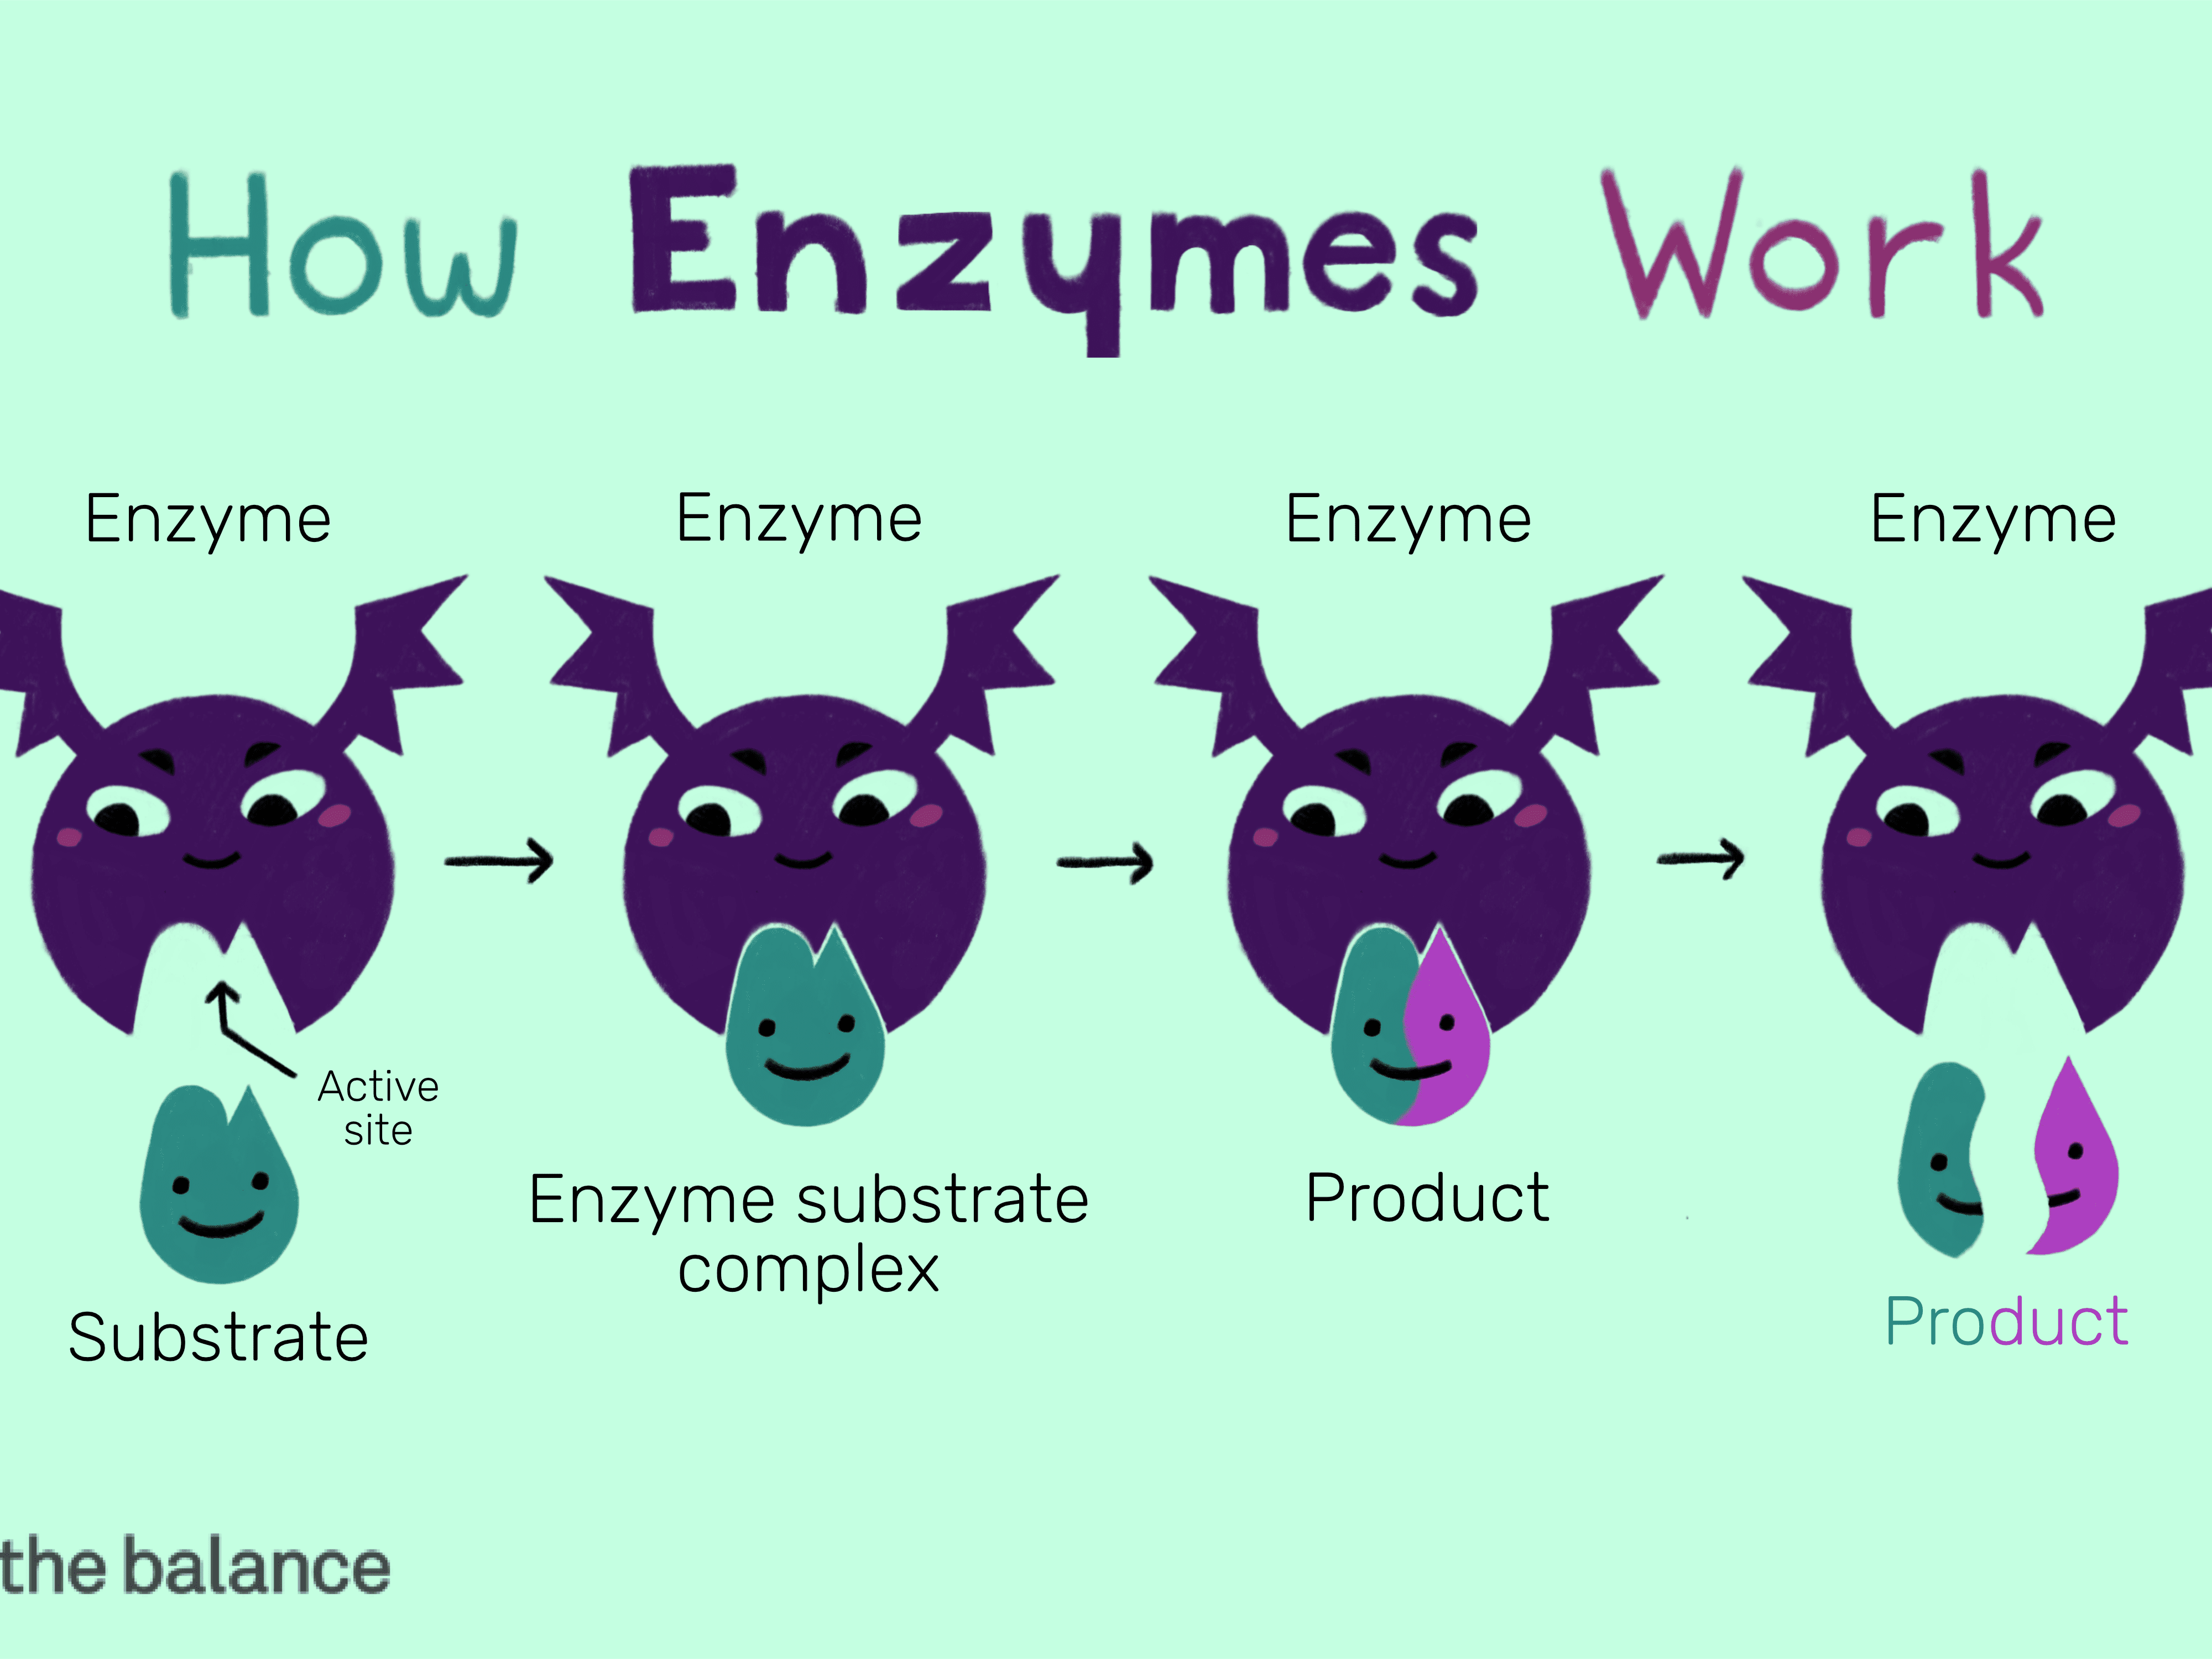 Structure and Function of an Enzyme